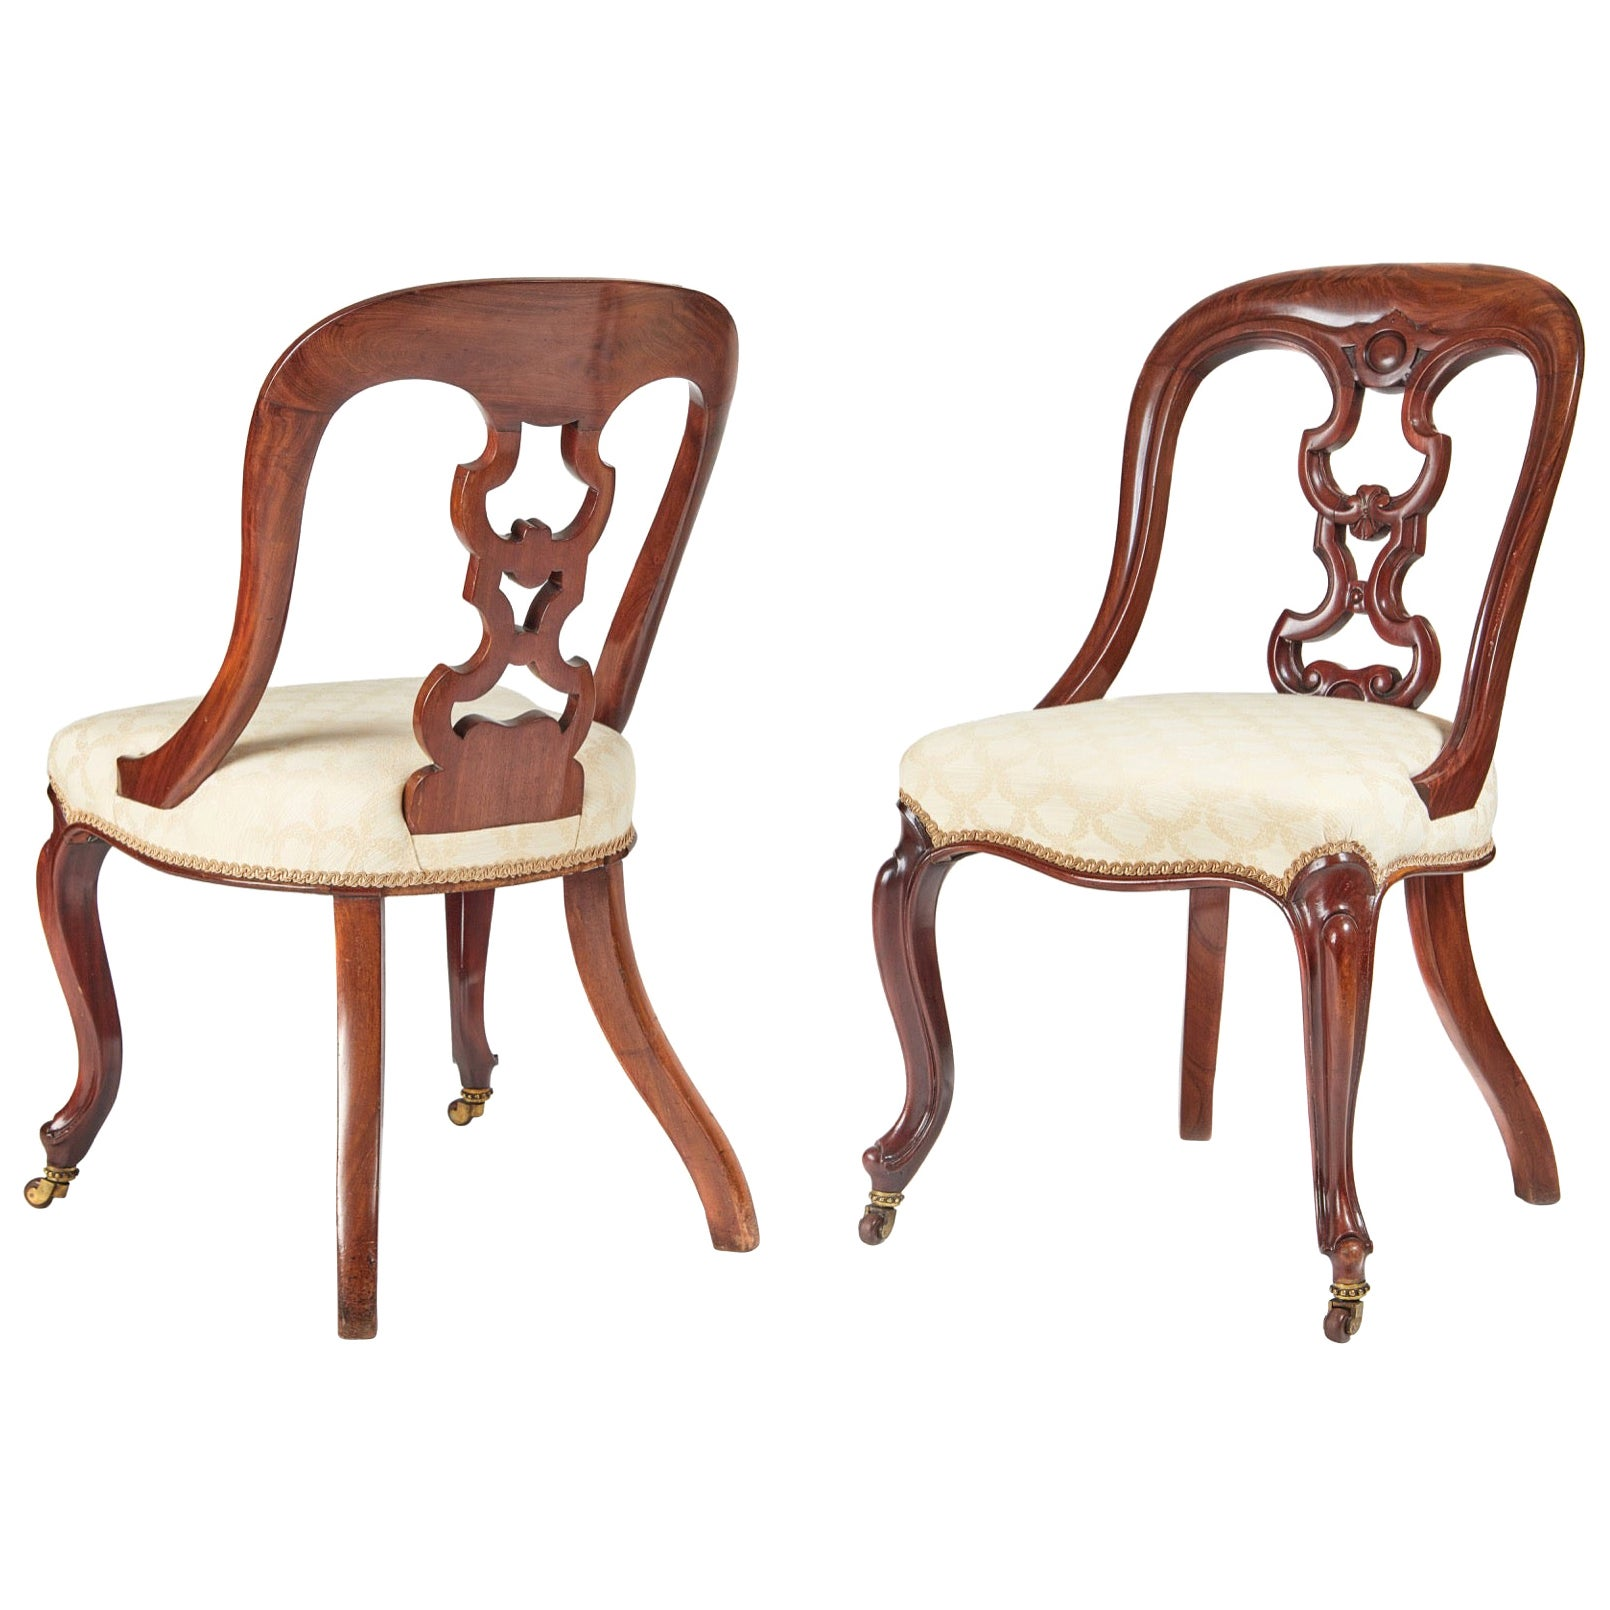 Fine Quality Pair of Antique Victorian Mahogany Side or Hall Chairs